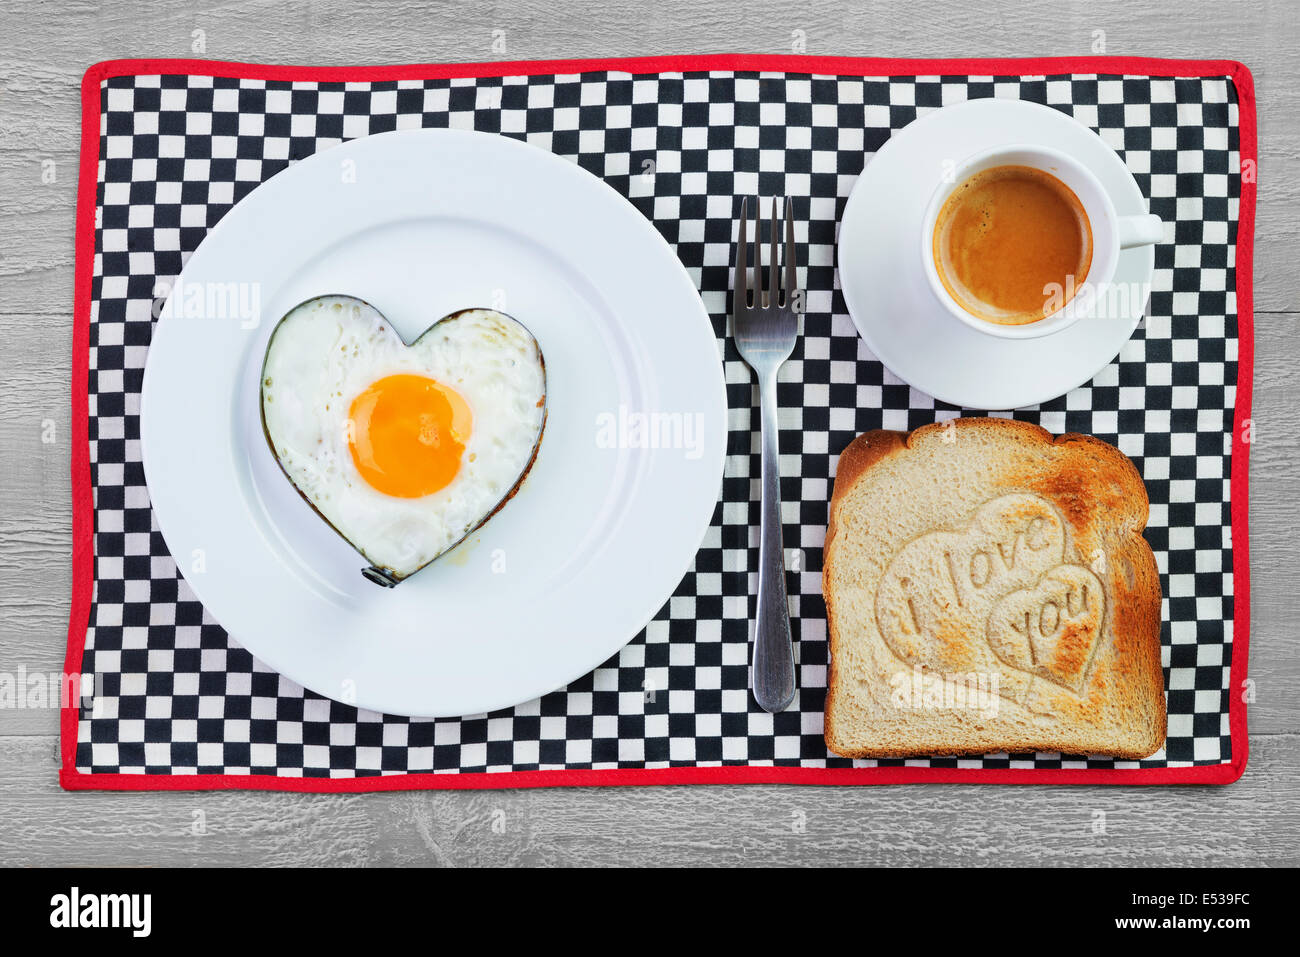 Fried egg  in heart shape  and toast with love message.Breakfast for a loved one - Stock Image